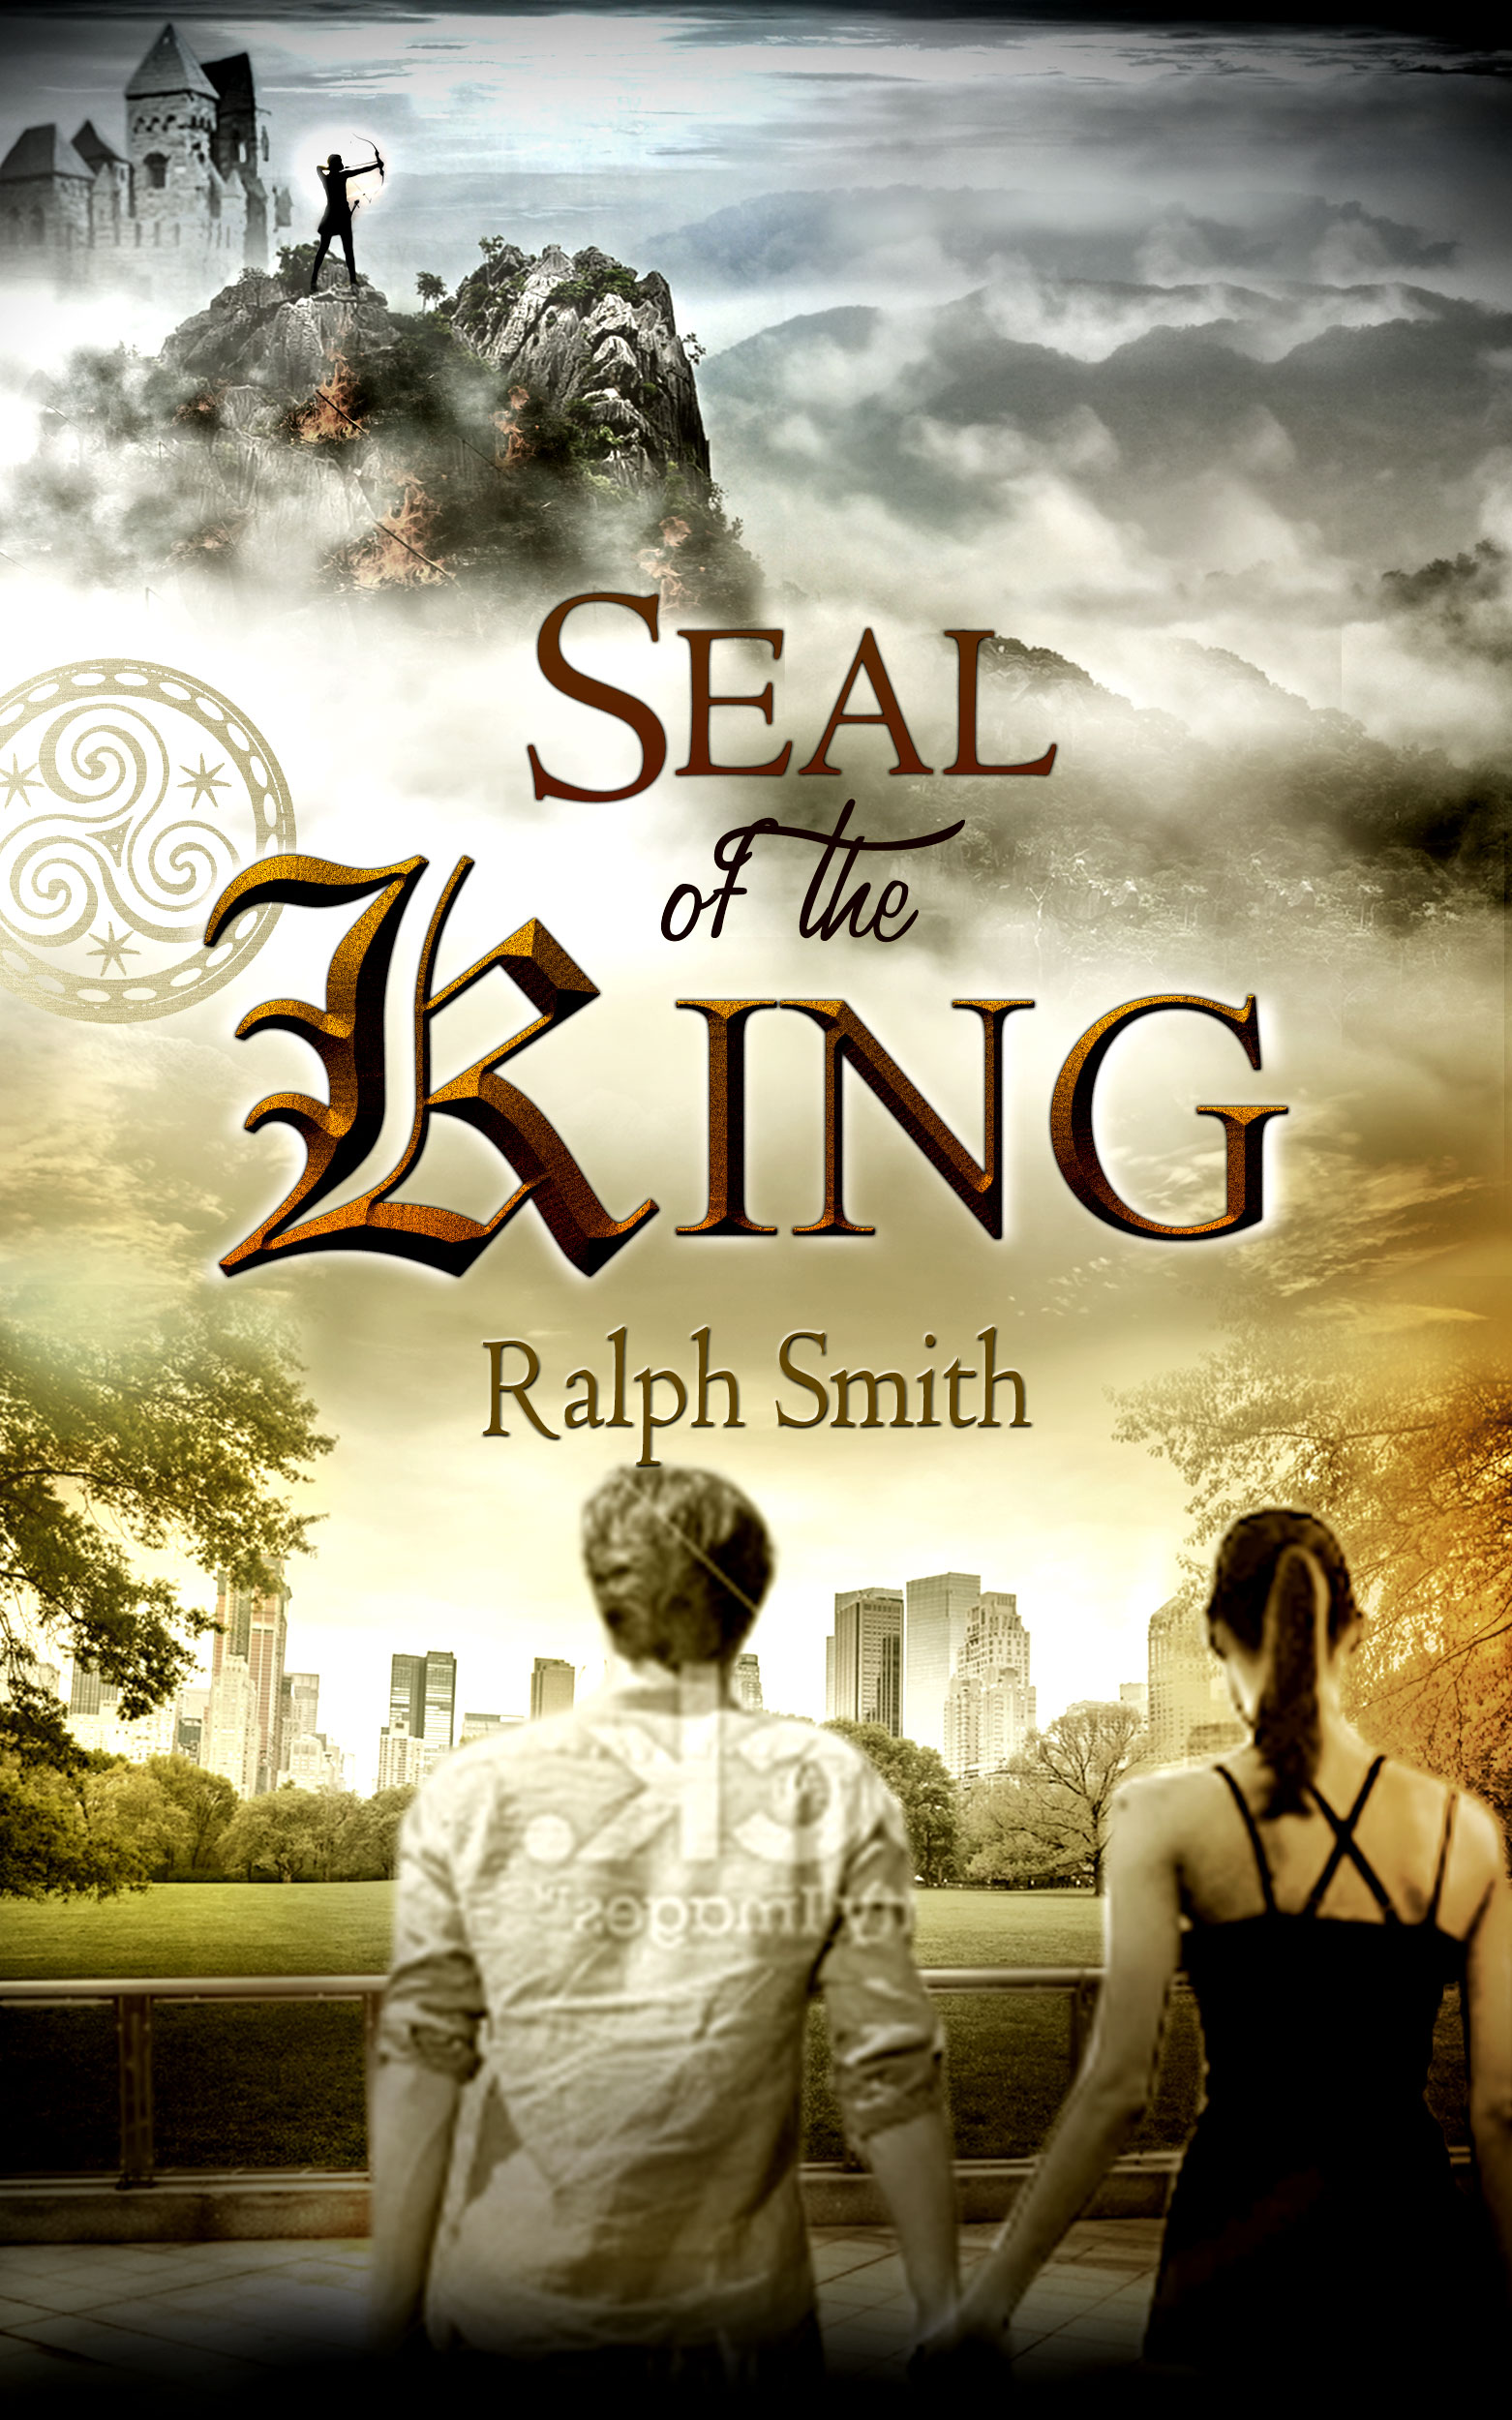 5.0 out of 5 stars Beautiful Christian Fantasy